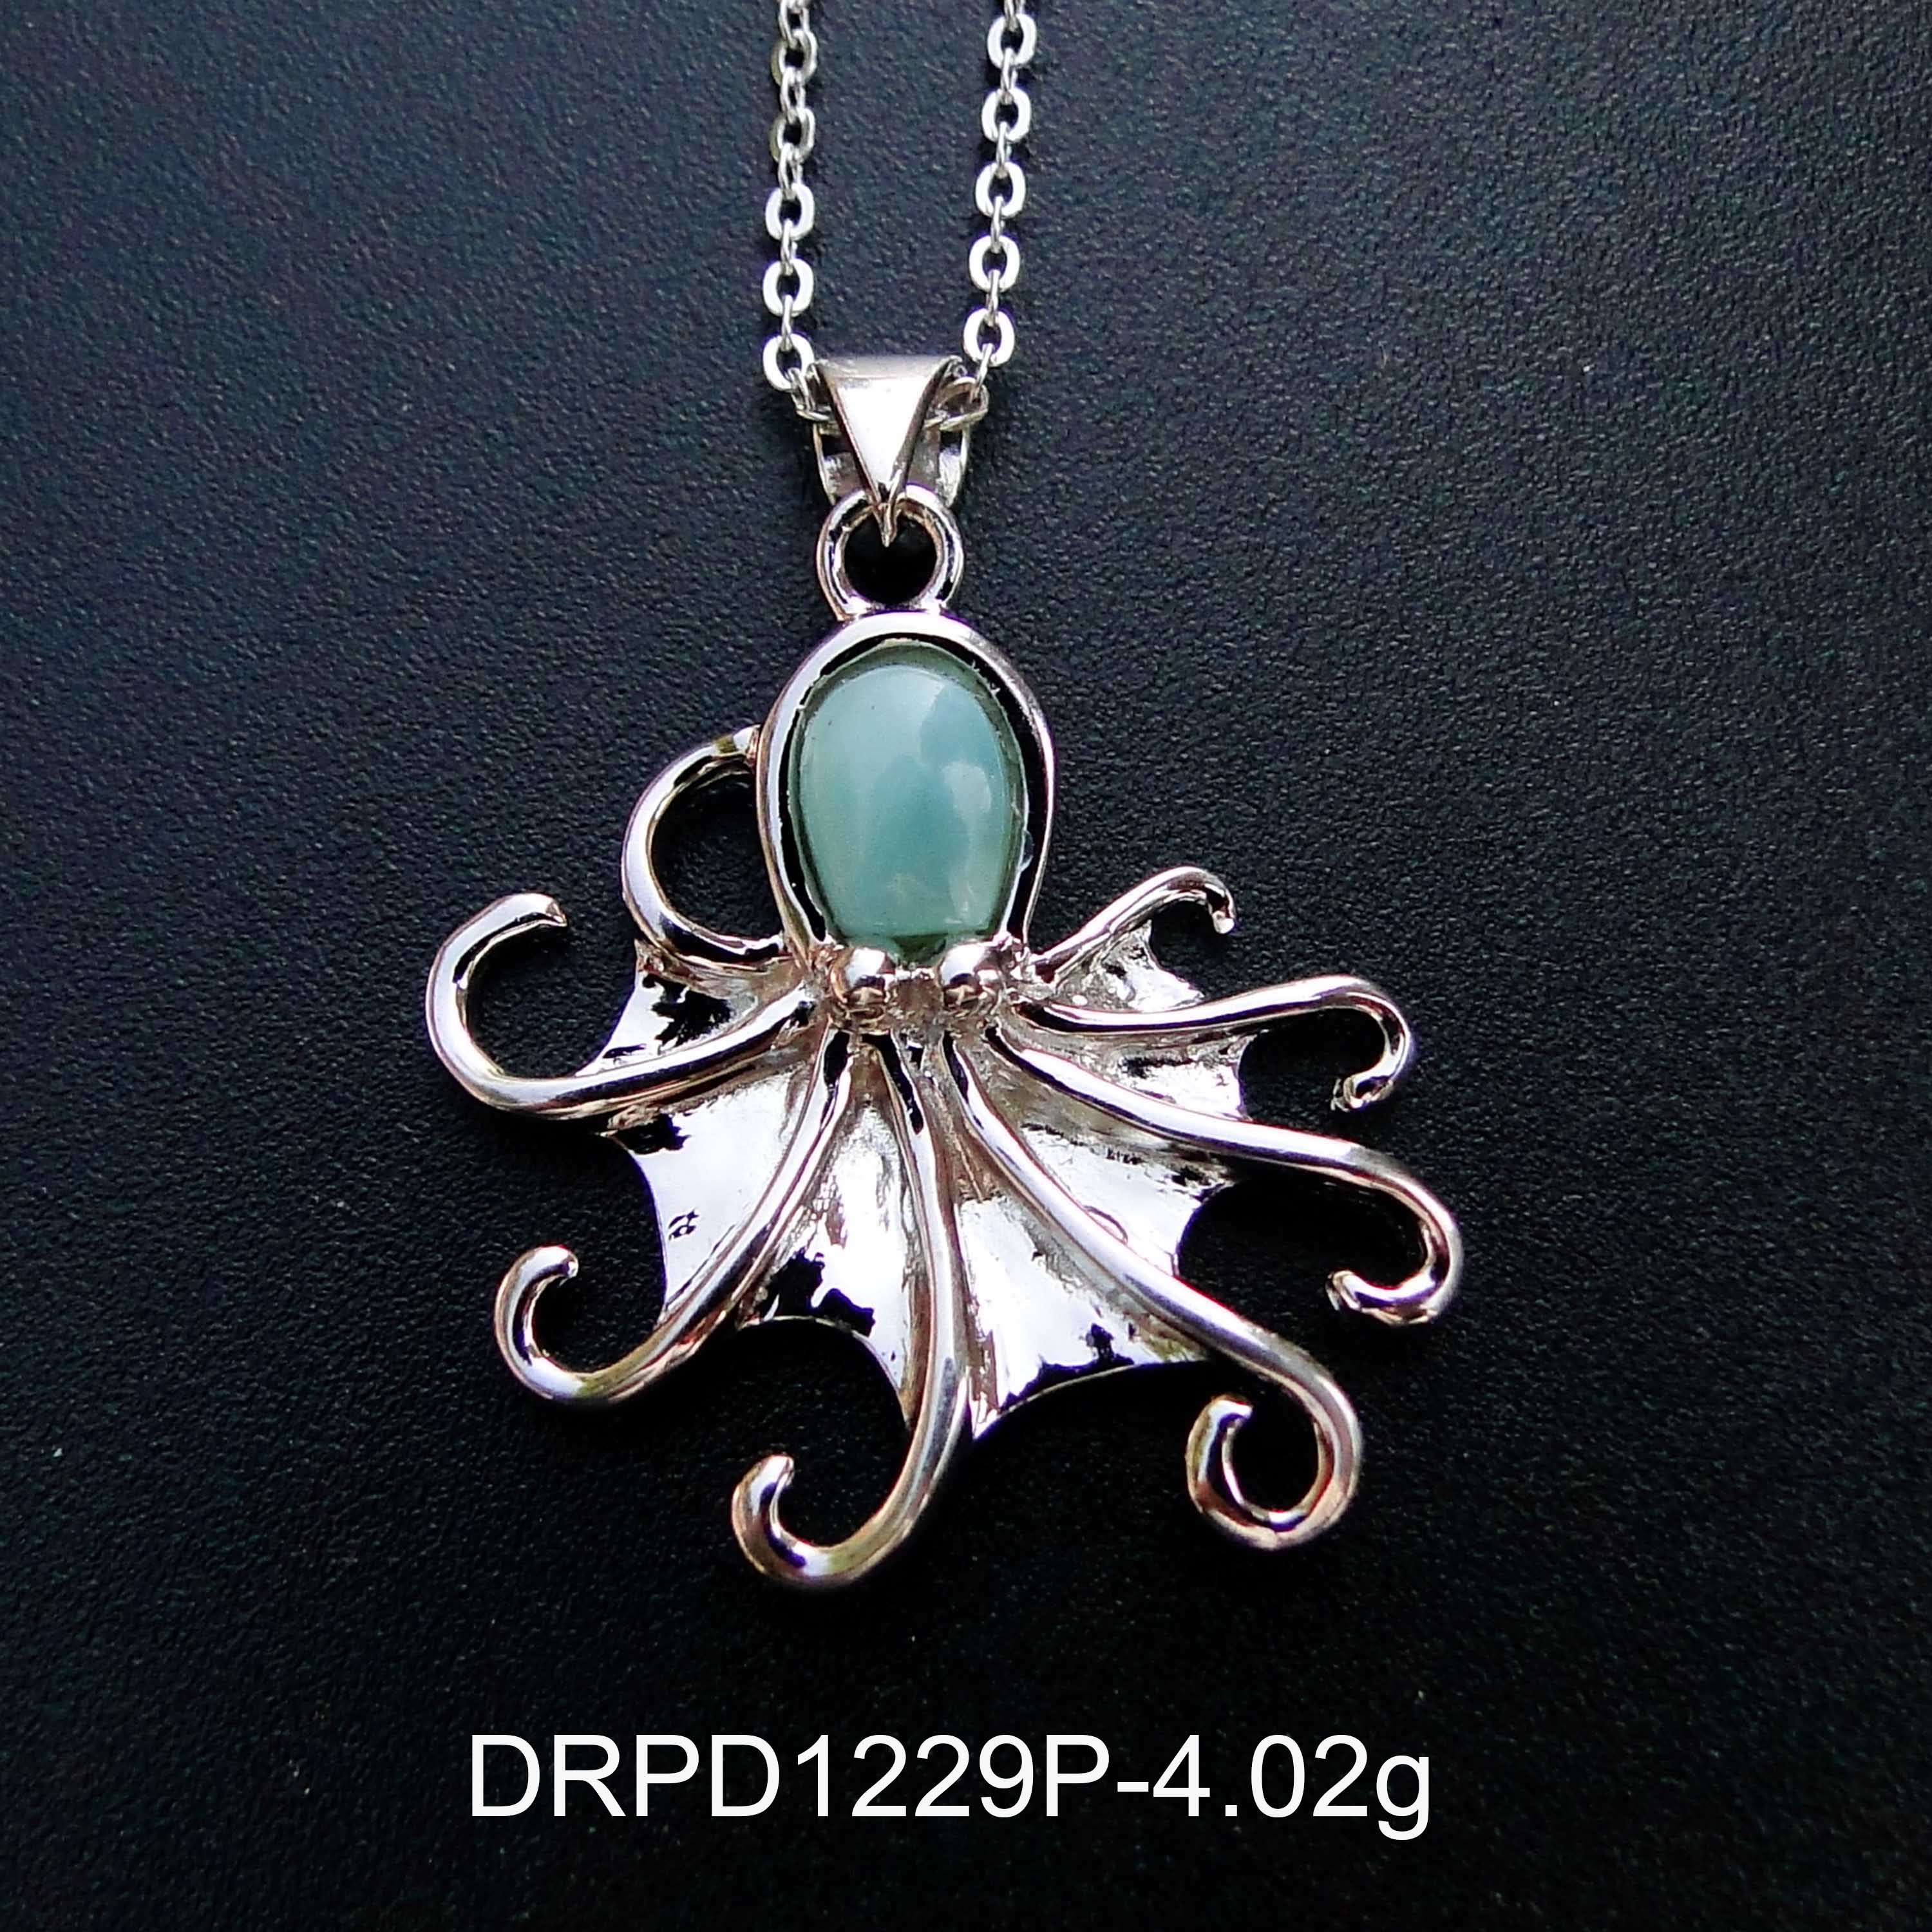 Pendant in real larimar and silver